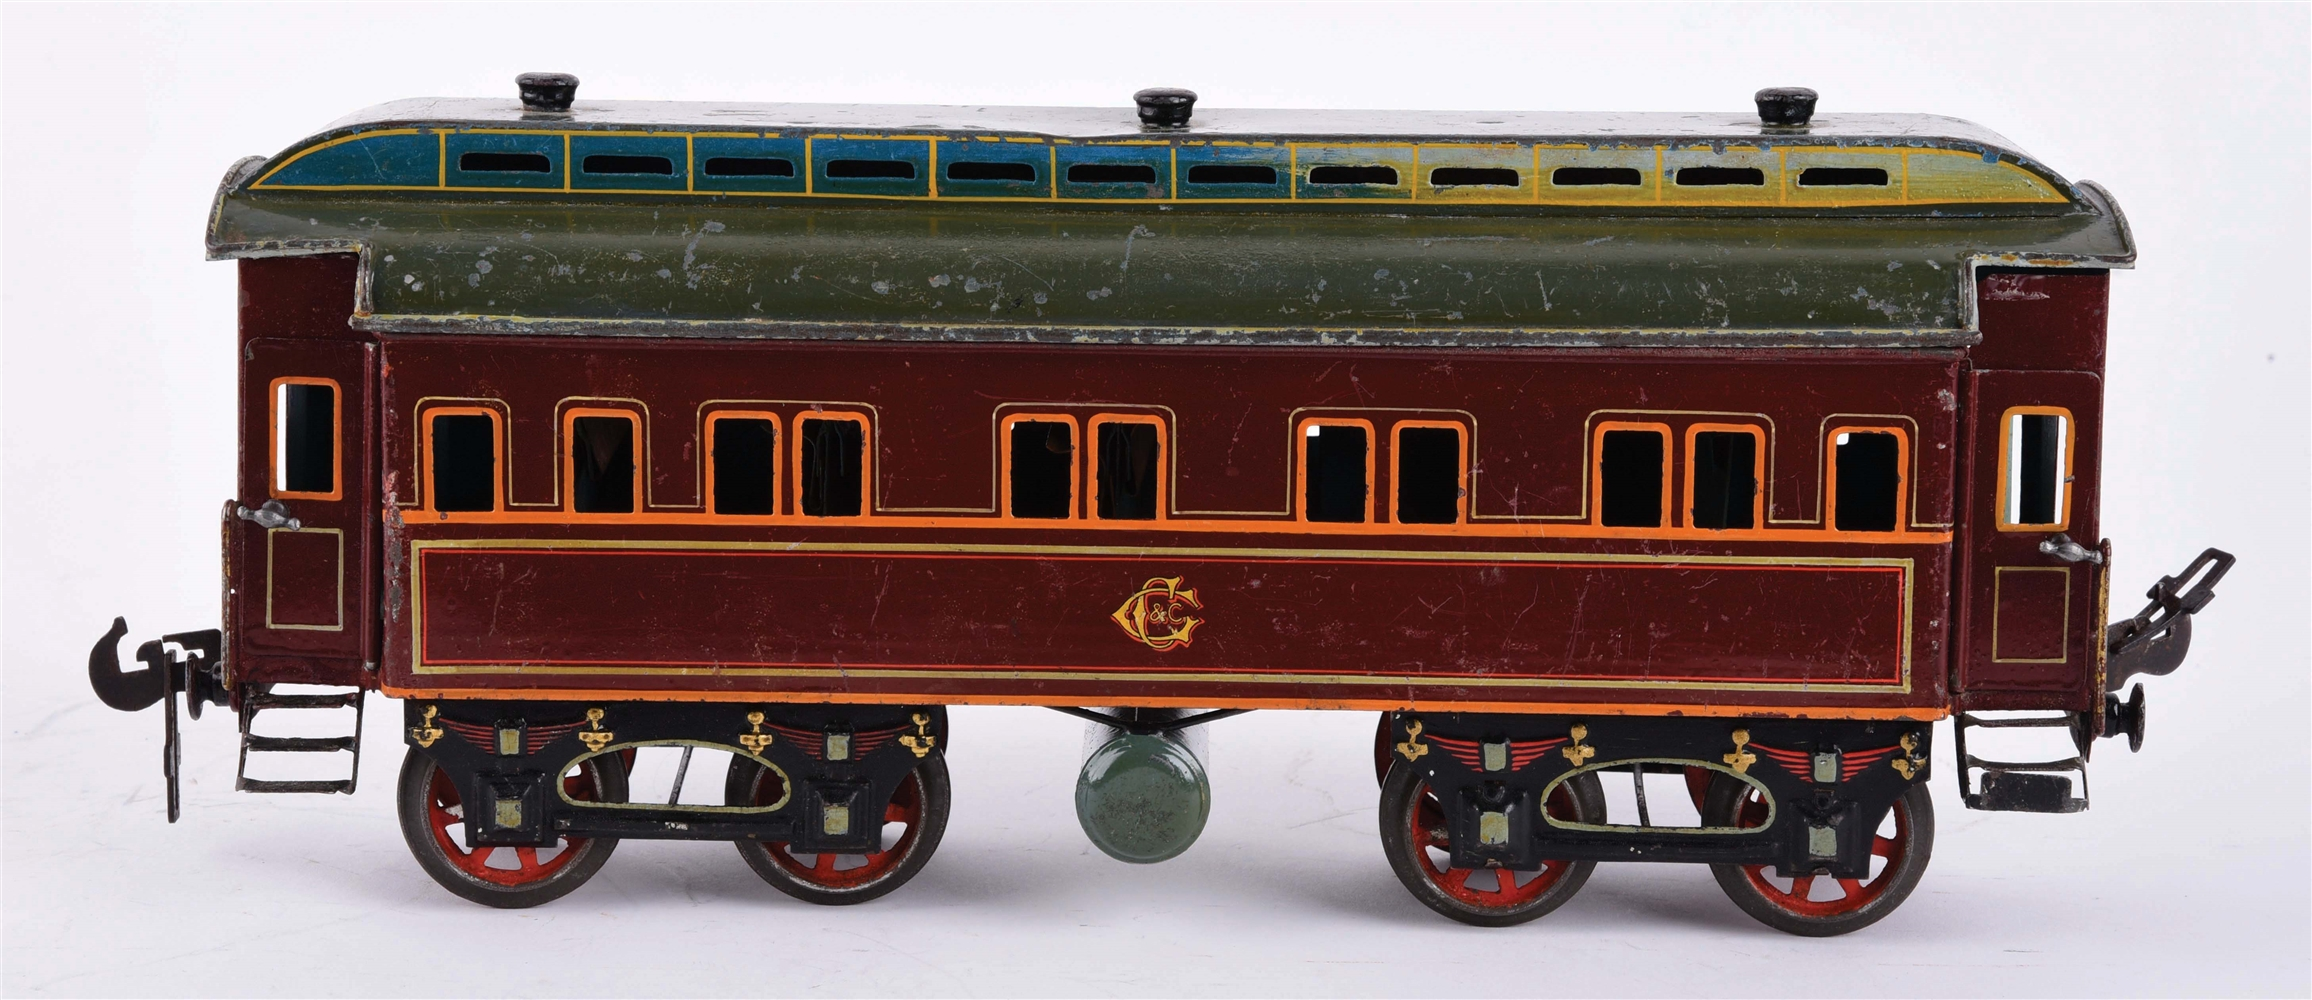 GERMAN HAND-PAINTED AND LITHOGRAPHIED SCARCE CARETTE 2 GAUGE PASSENGER CAR.